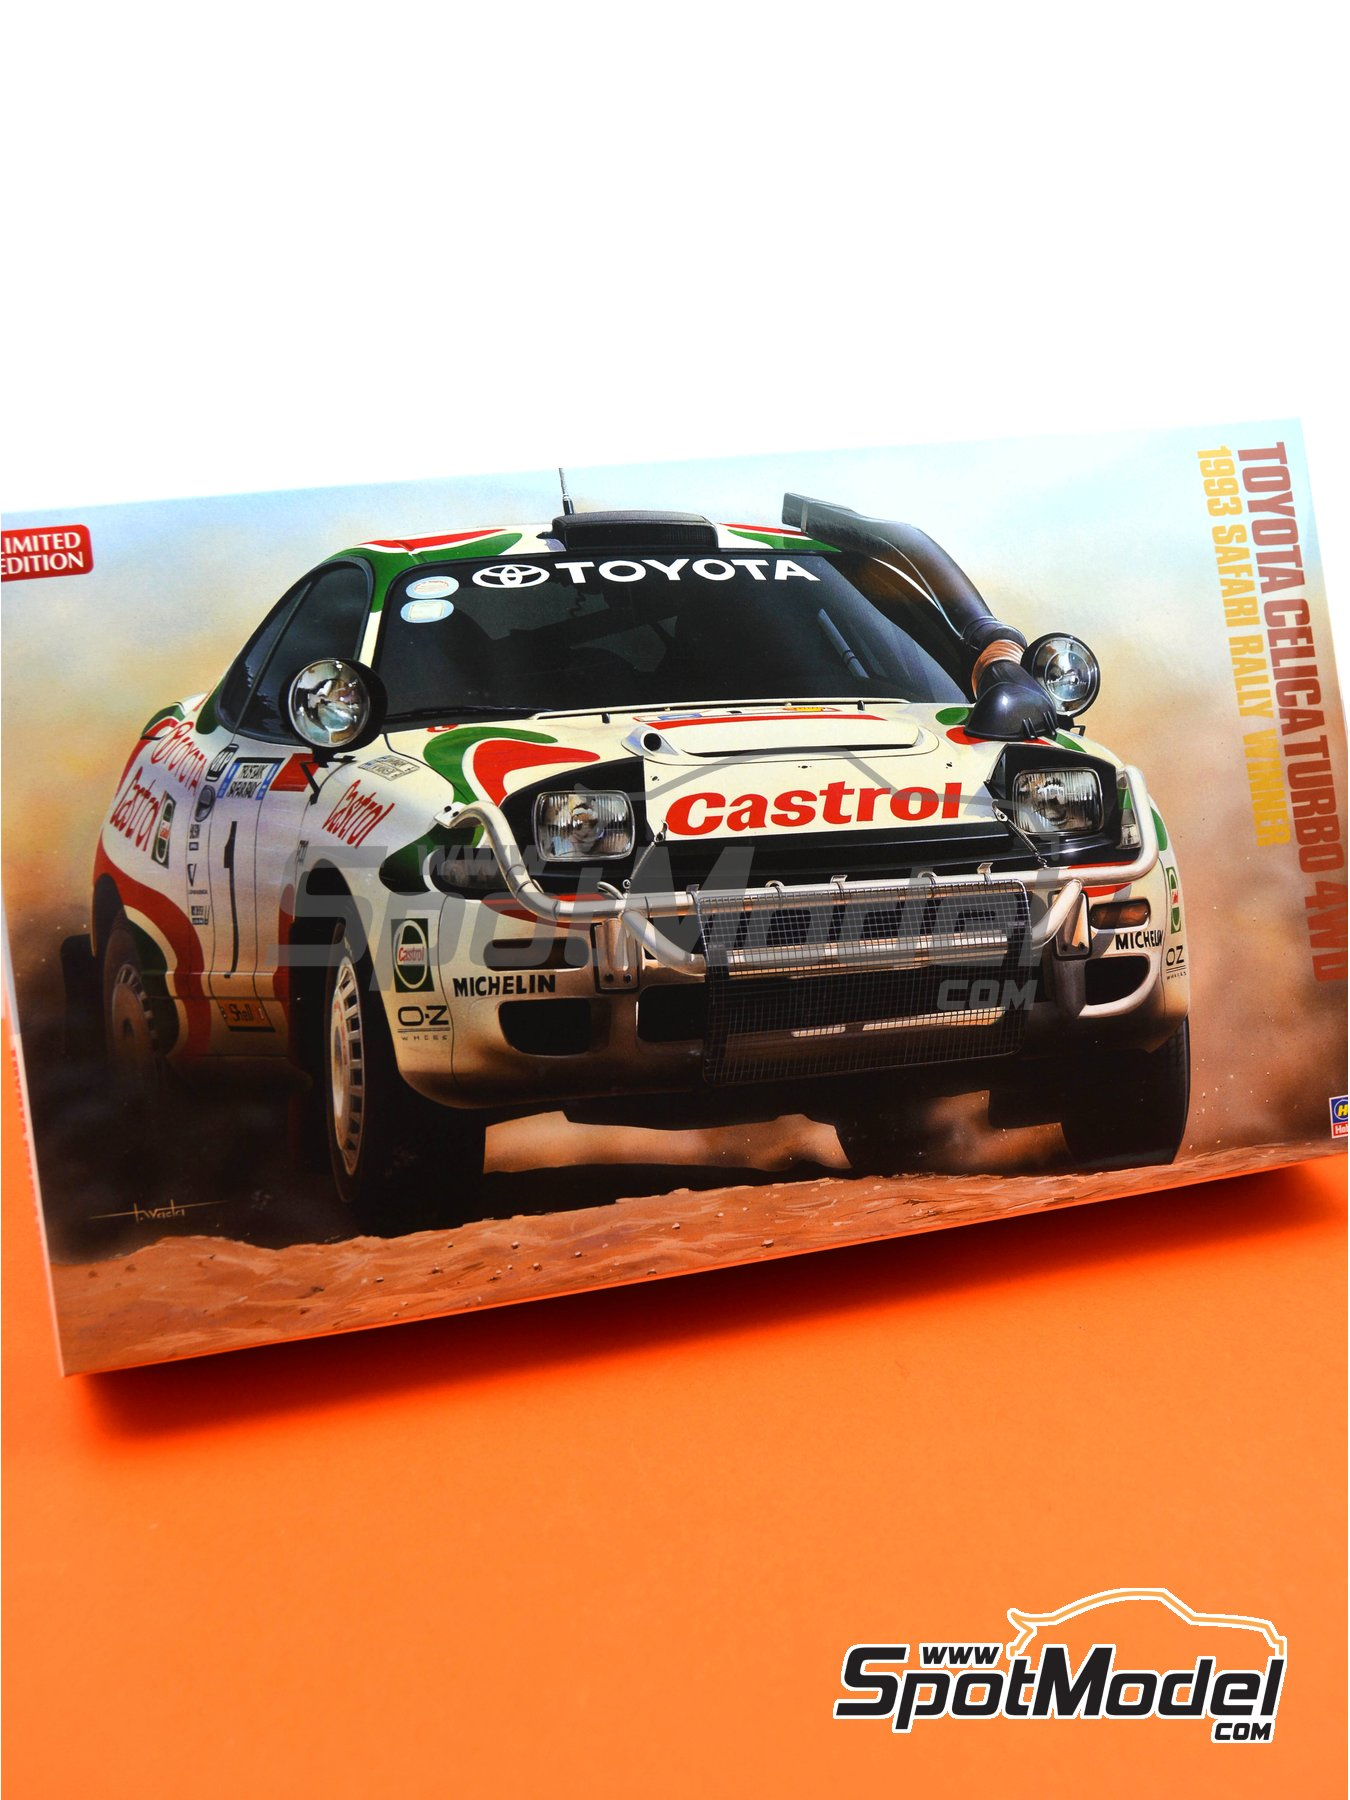 Toyota Celica Turbo 4WD Toyota Castrol Team - Safari Rally 1993 | Model car kit in 1/24 scale manufactured by Hasegawa (ref. 20309) image